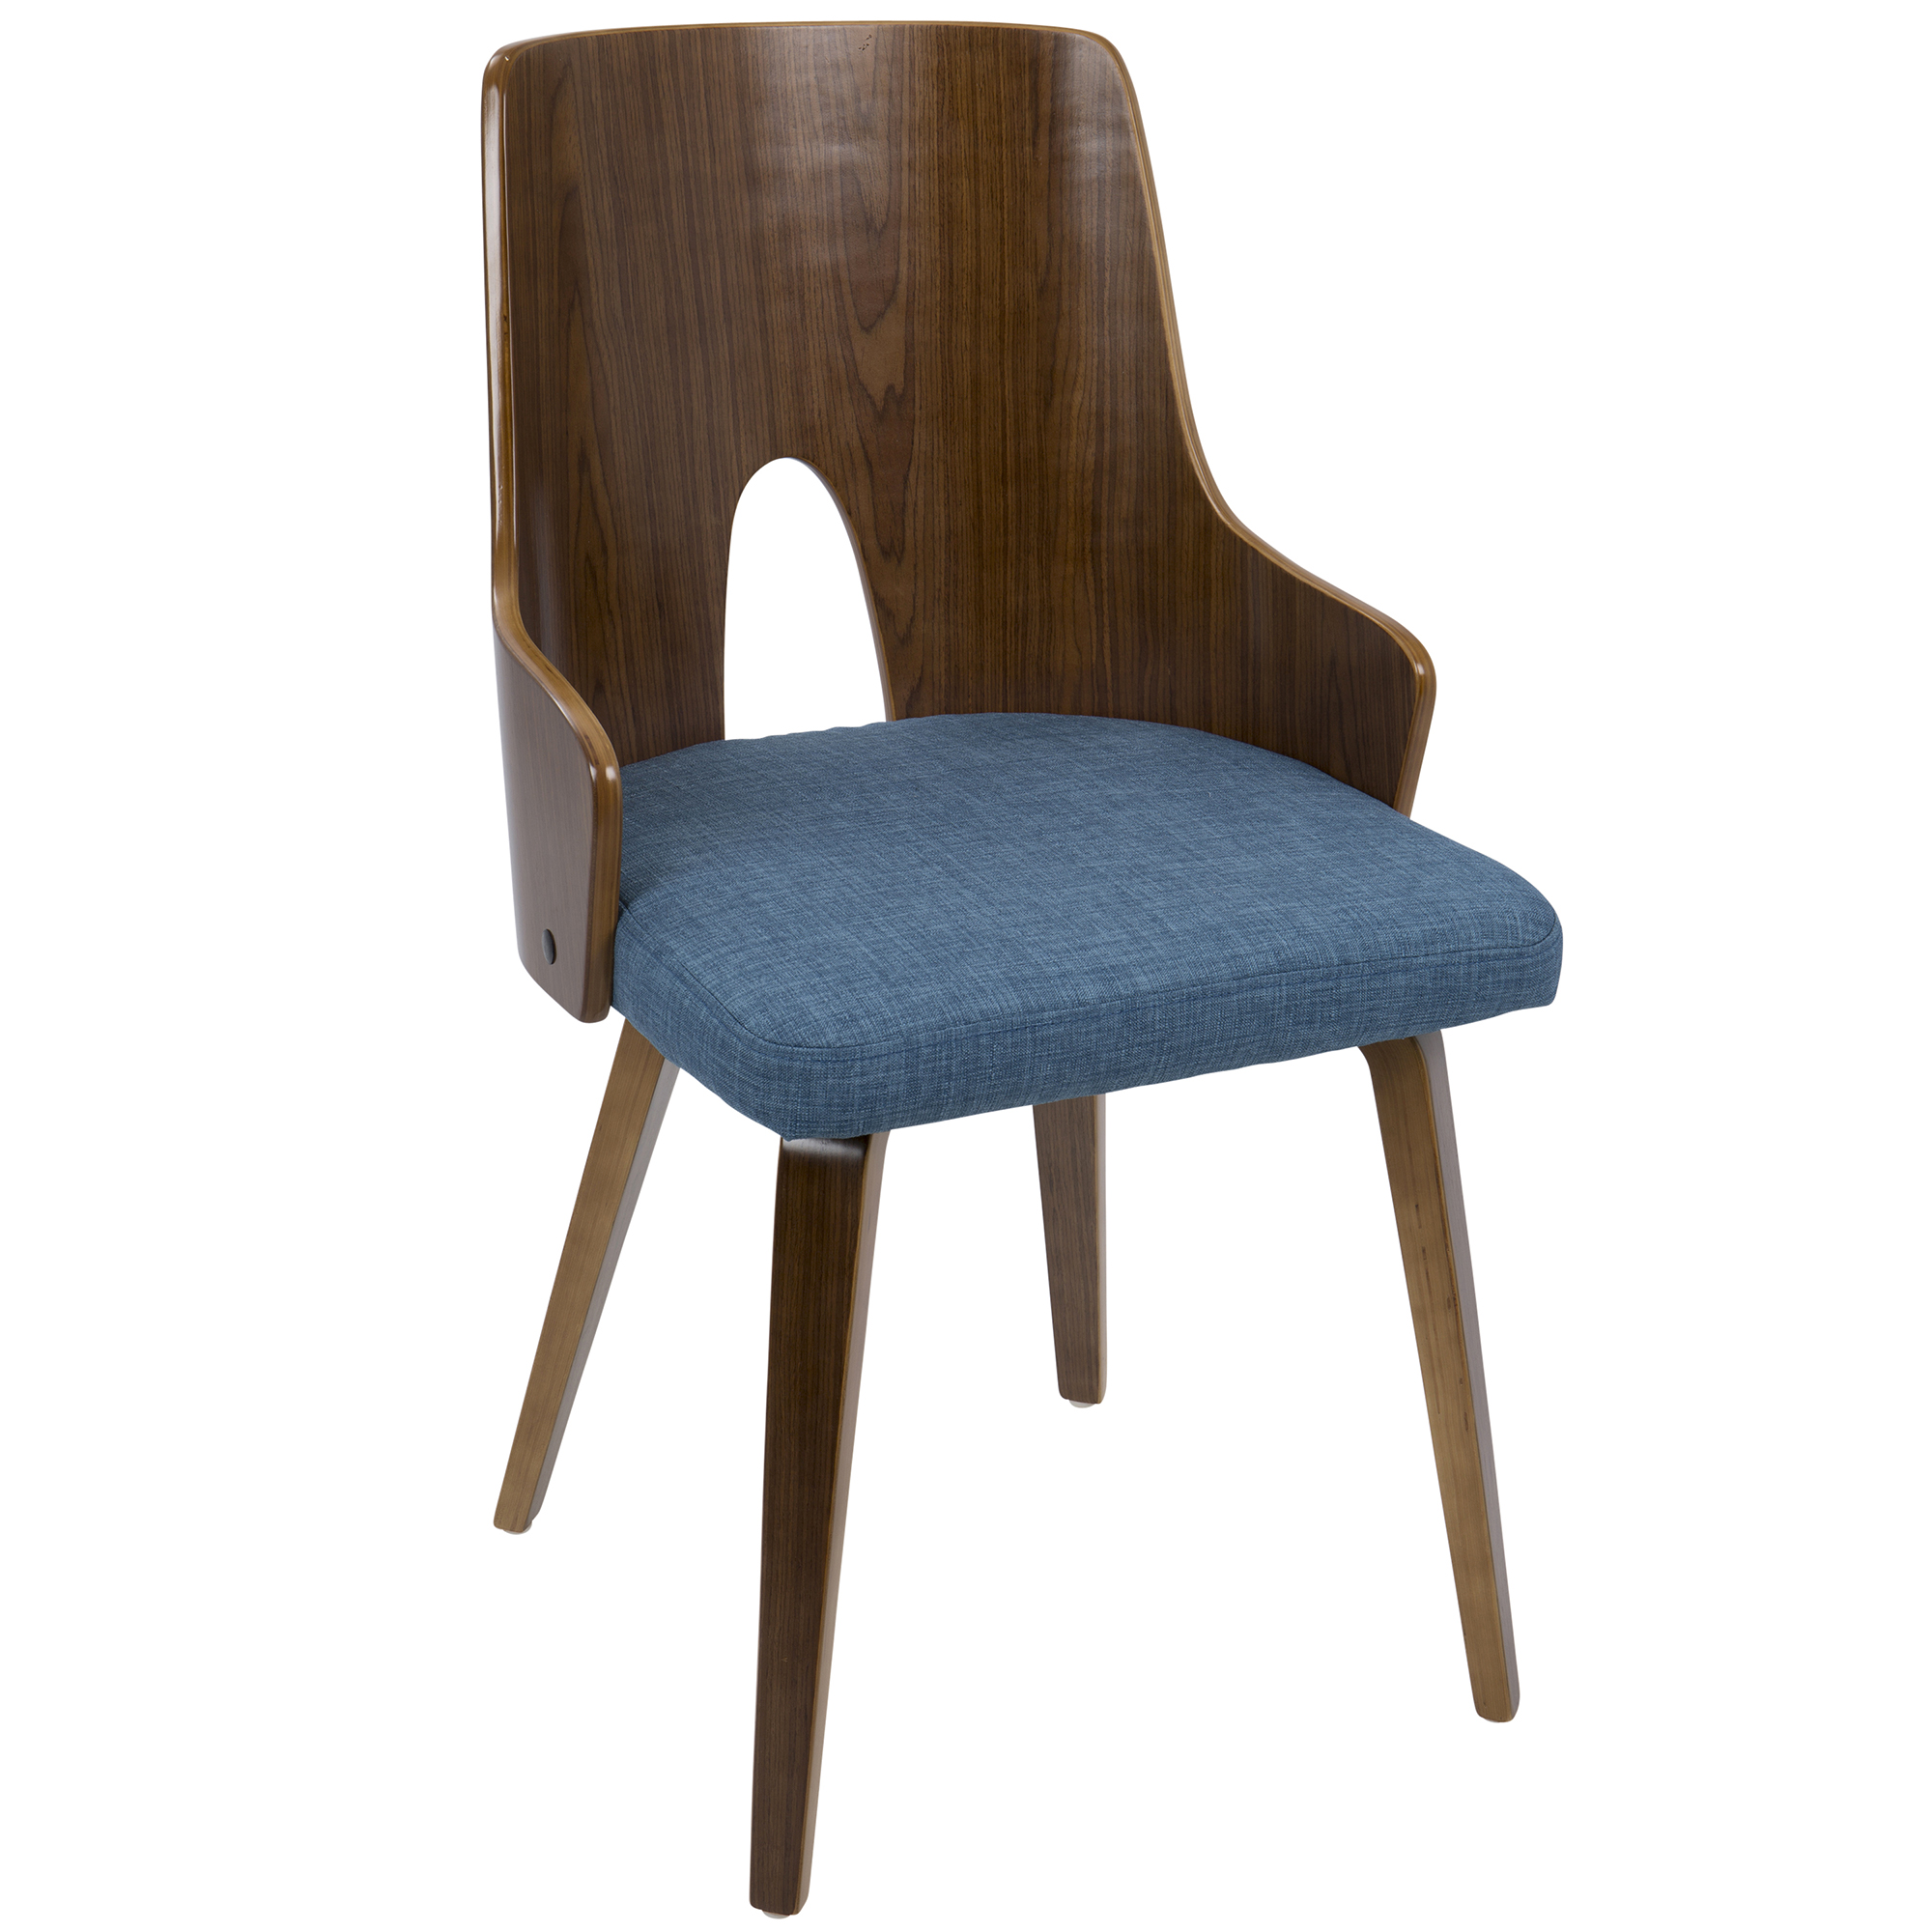 Ariana Mid-Century Modern Dining Accent Chair in Walnut and Blue Fabric by Lumisource Set of 2 by LumiSource